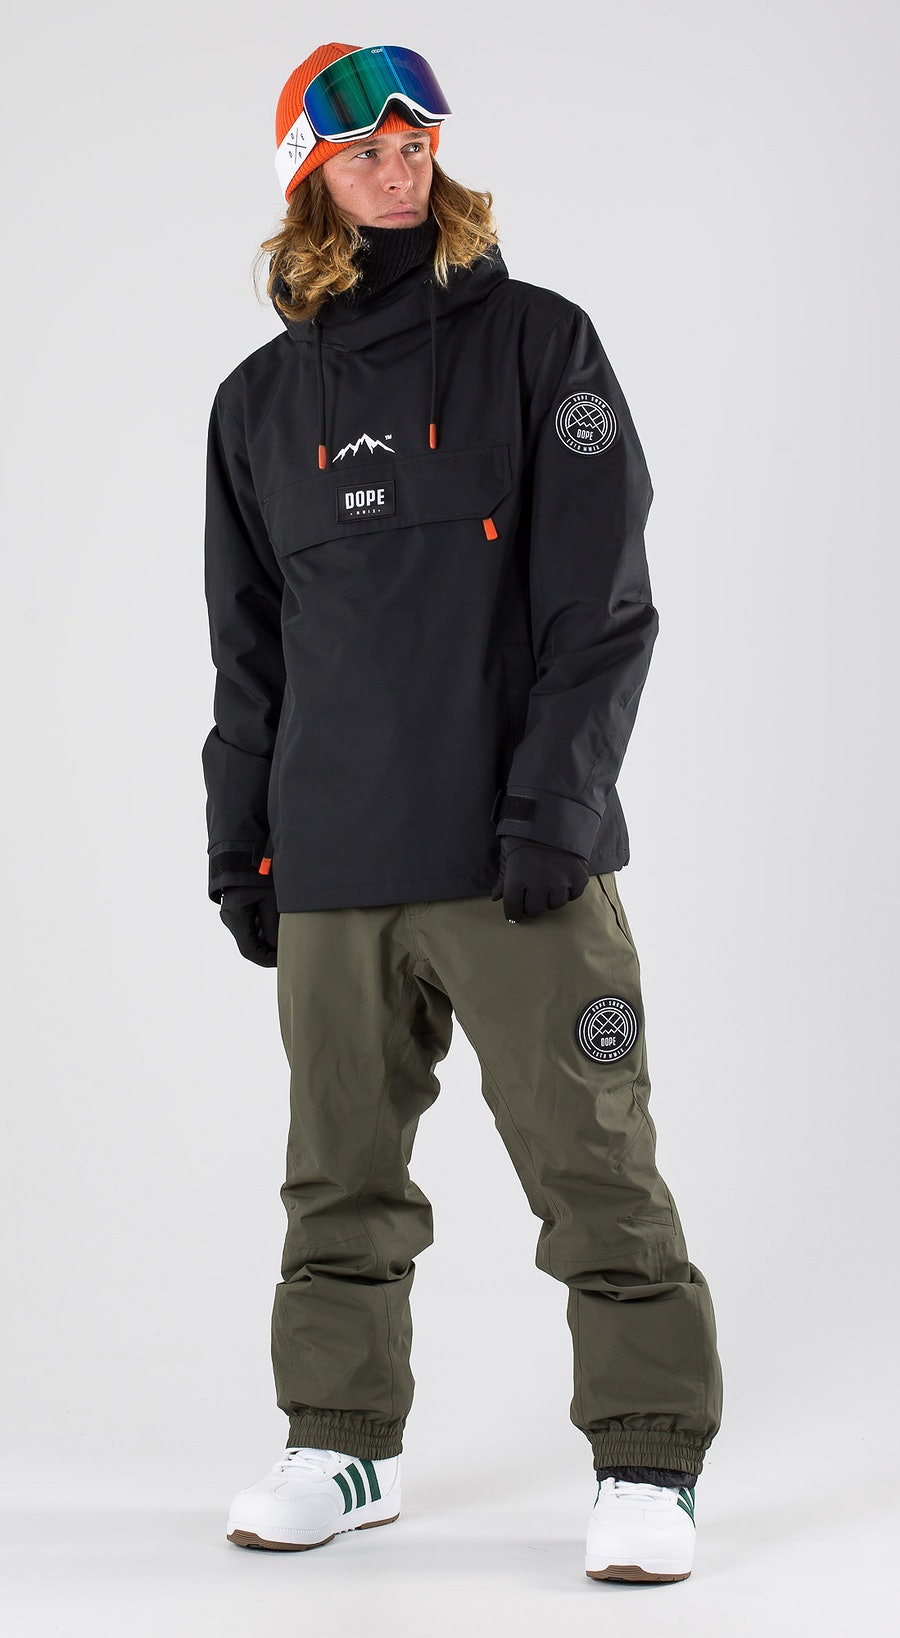 Dope Blizzard Black Vêtements de Snowboard  Multi